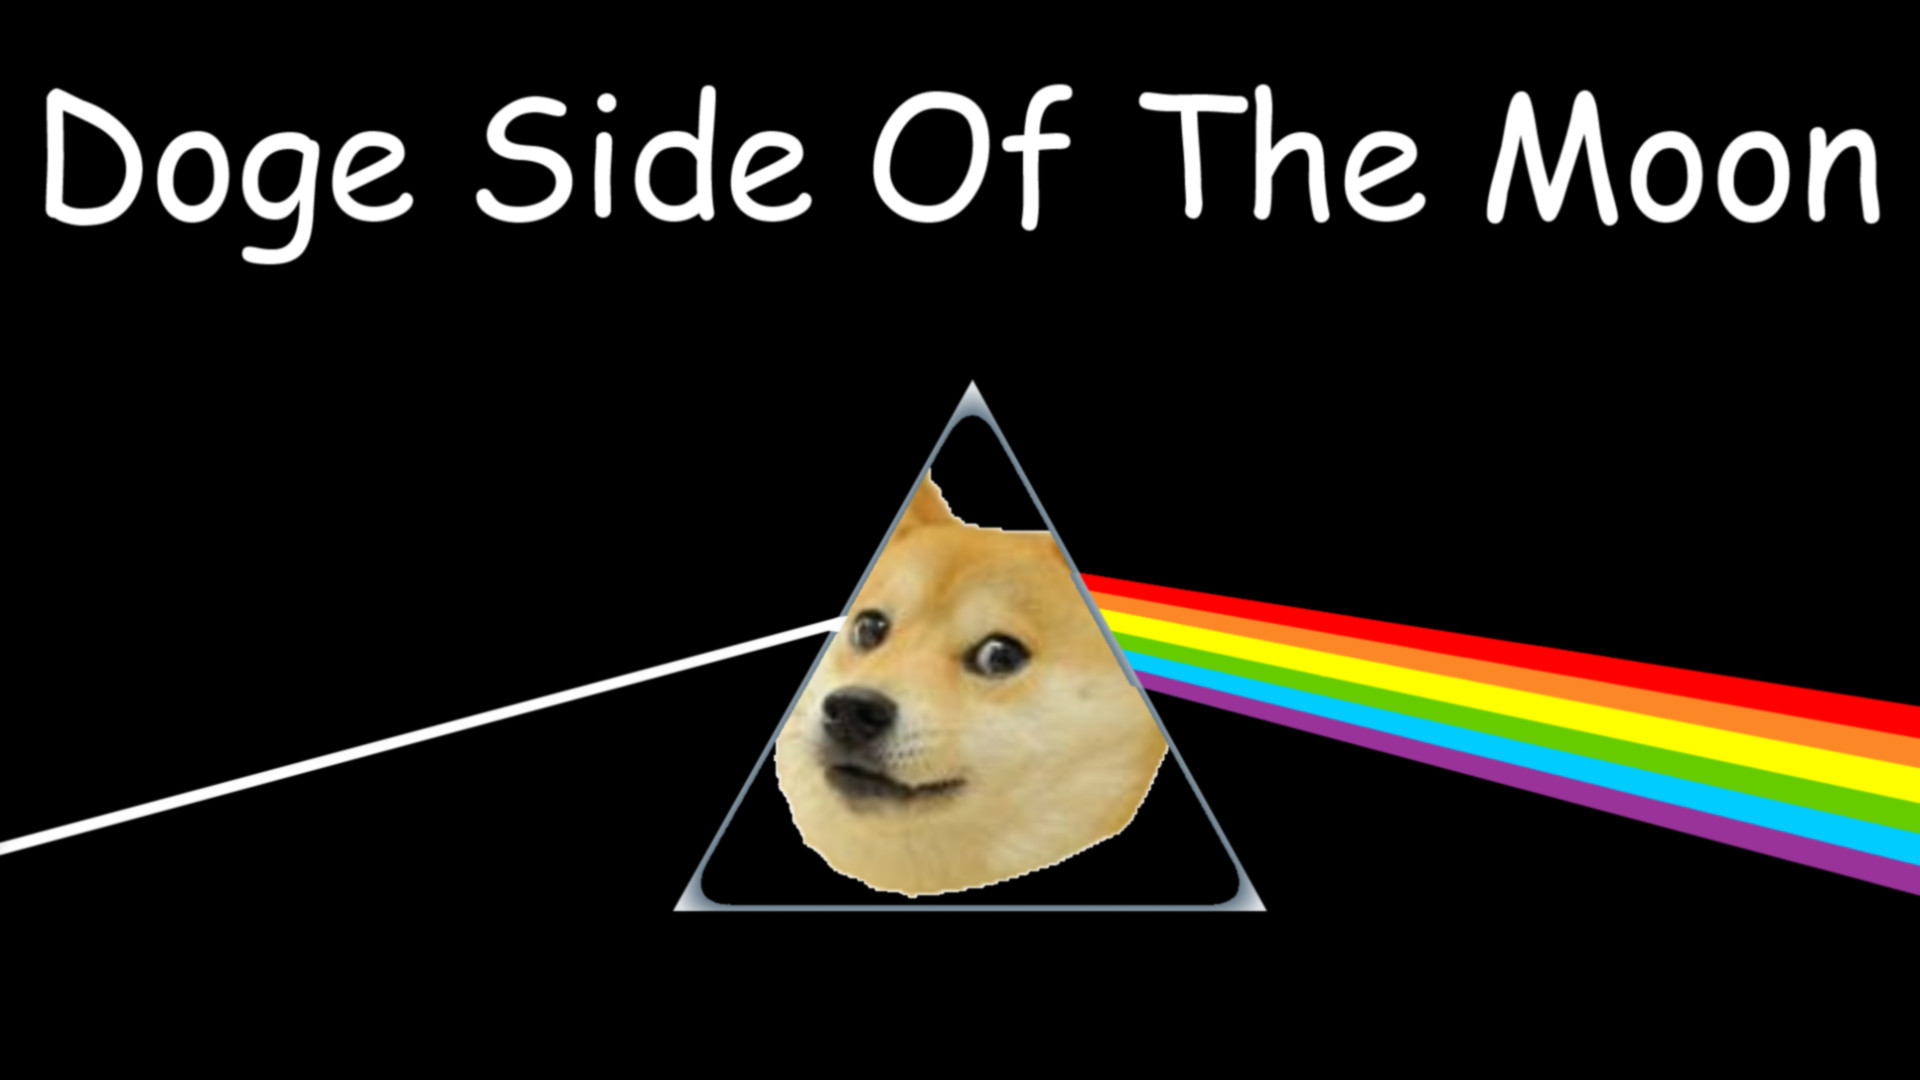 Res: 1920x1080, Doge Side of the Moon, After all it's just another doge in the wall.